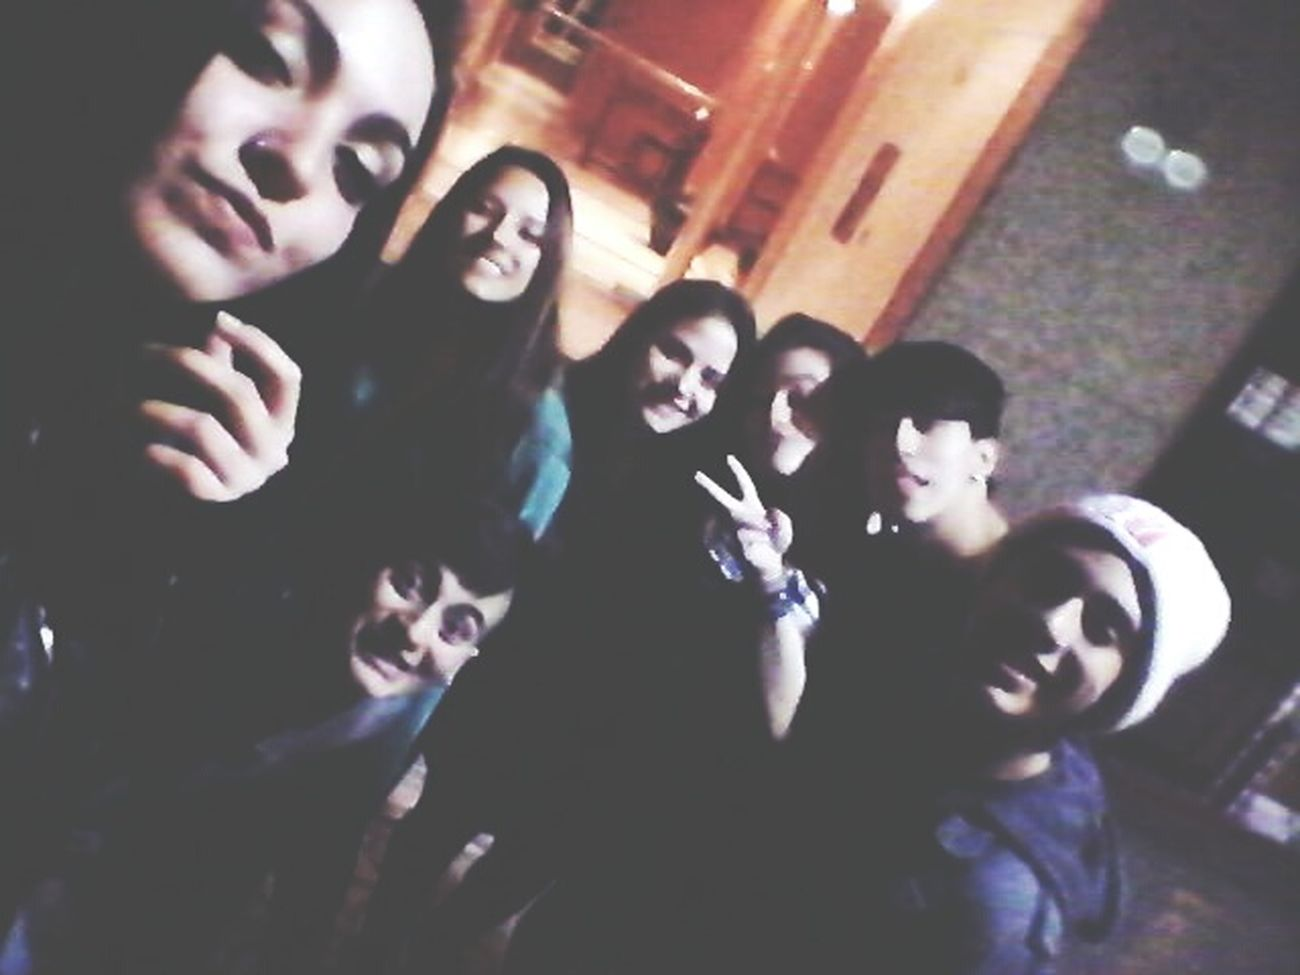 Que buena noche! Friends Night Drink And Weed Street